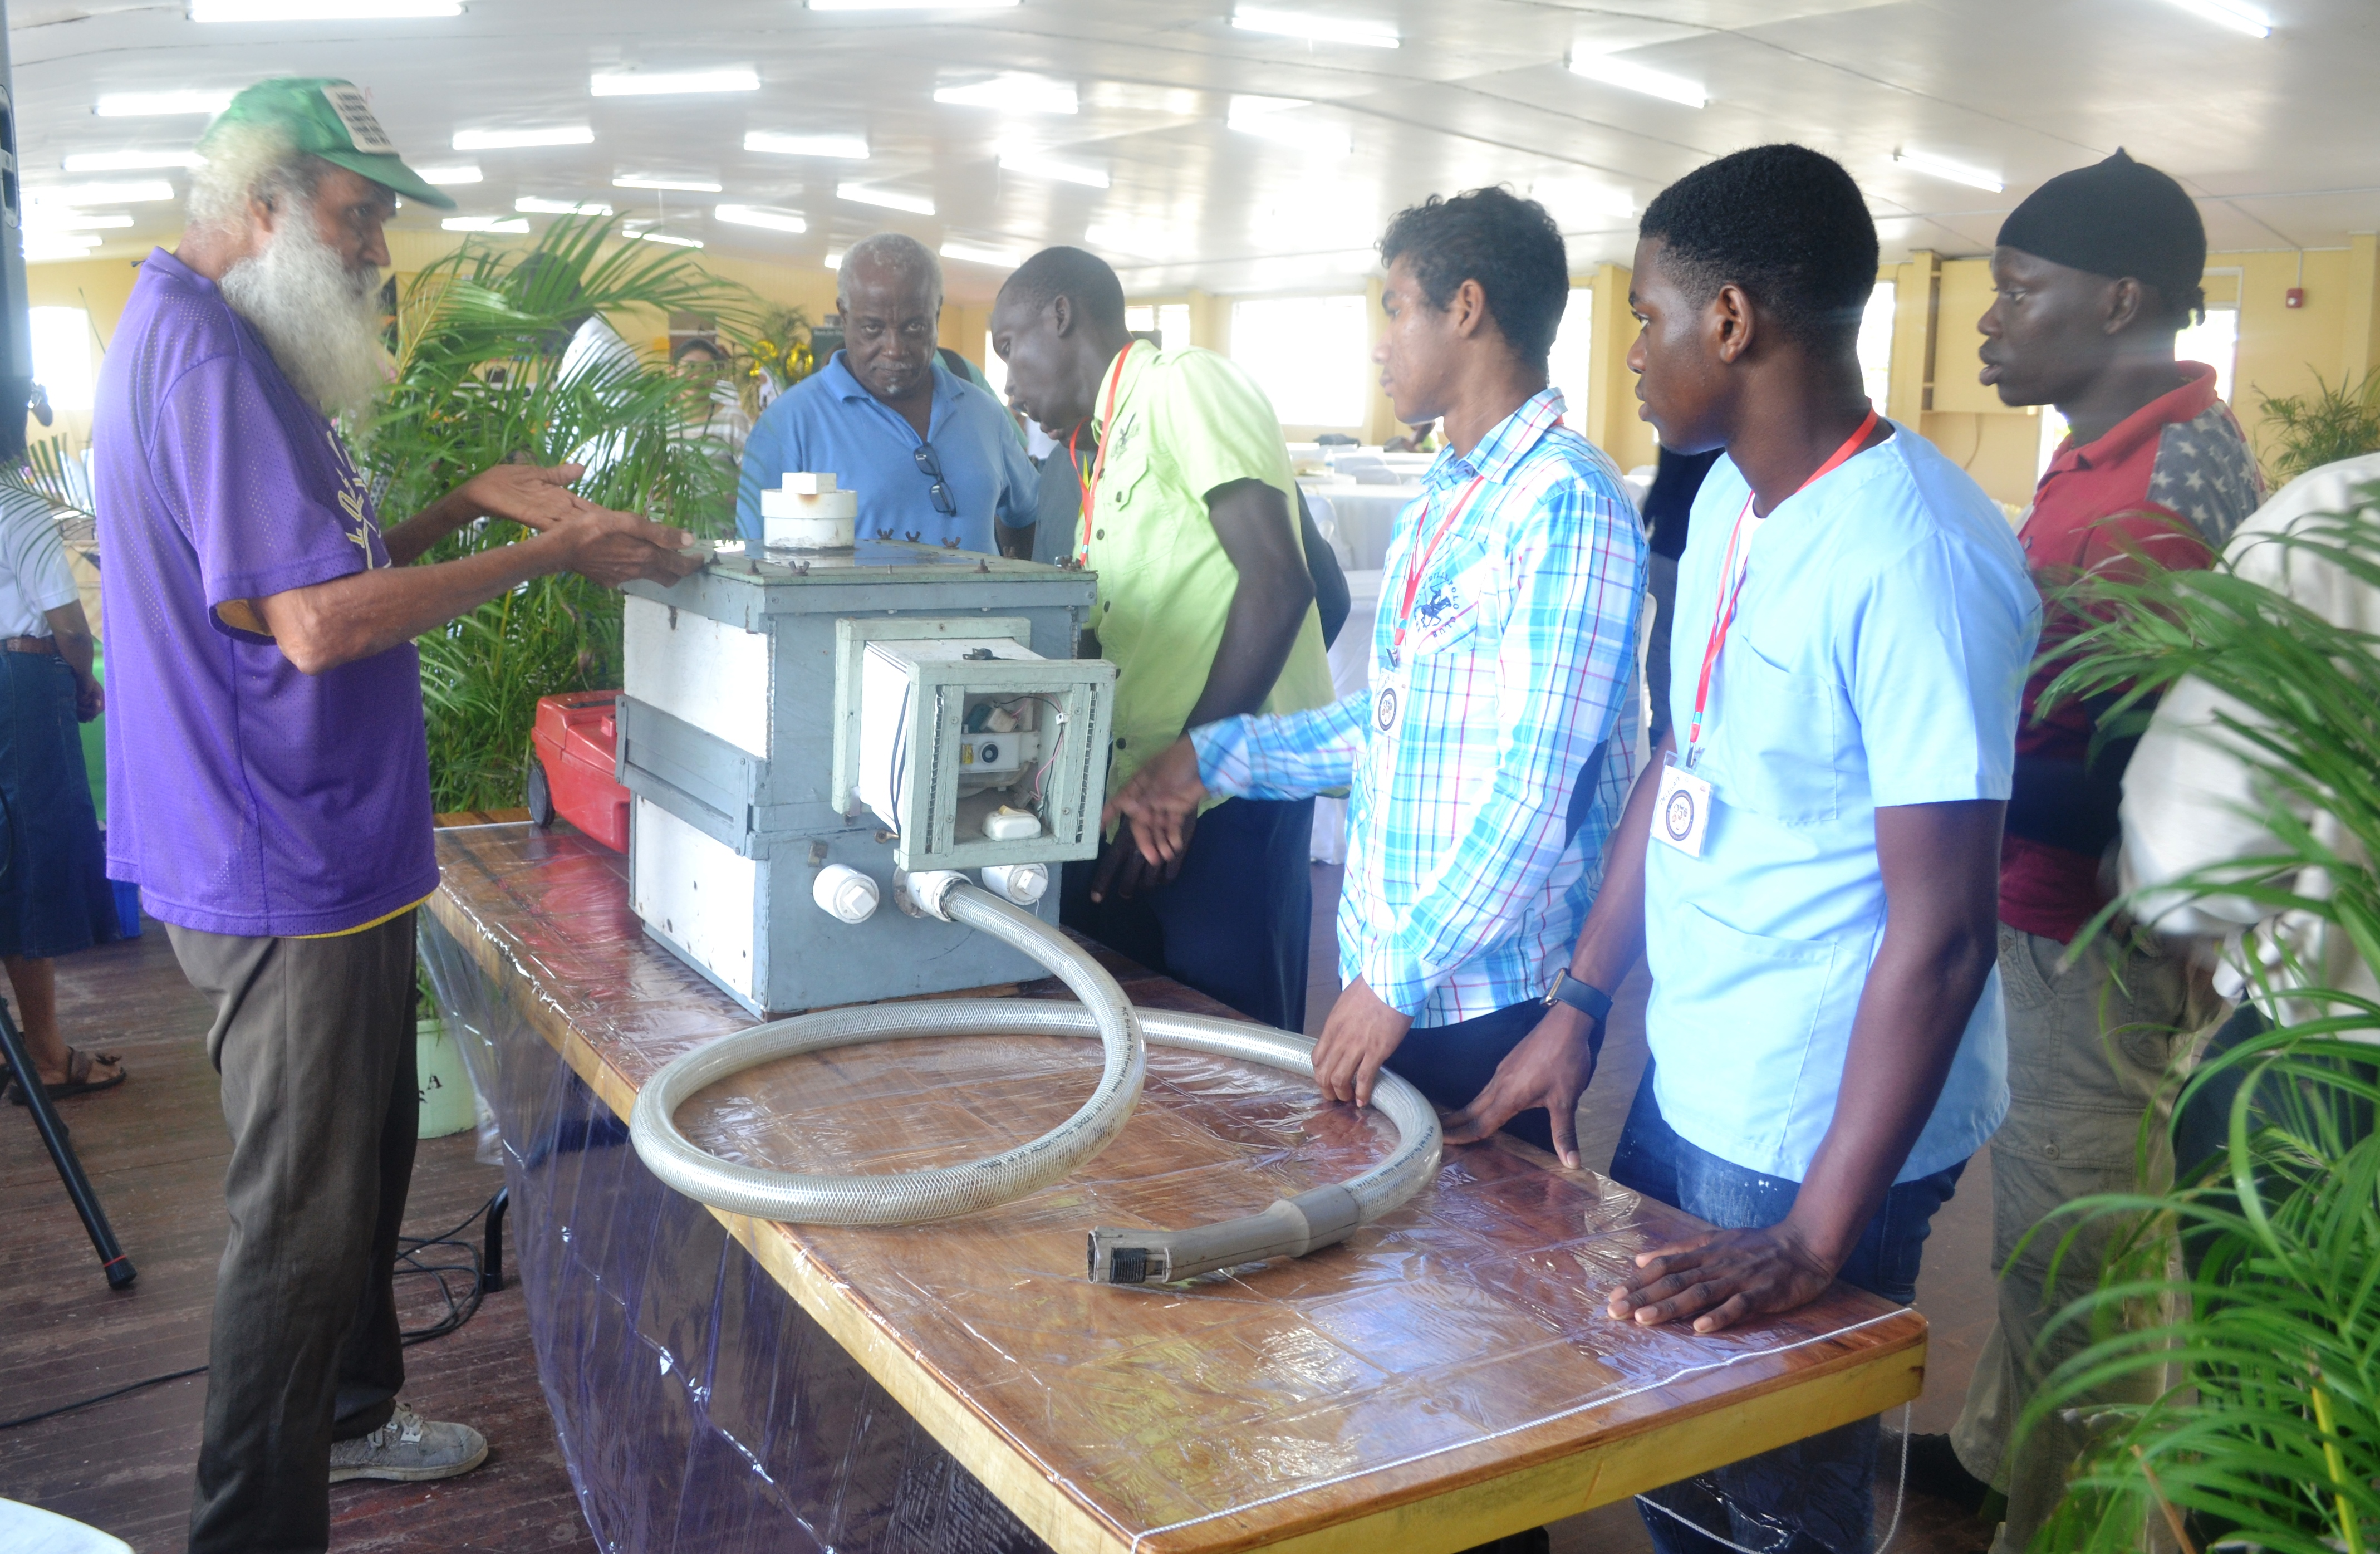 One exhibitor explaining the use of some beekeeping equipment